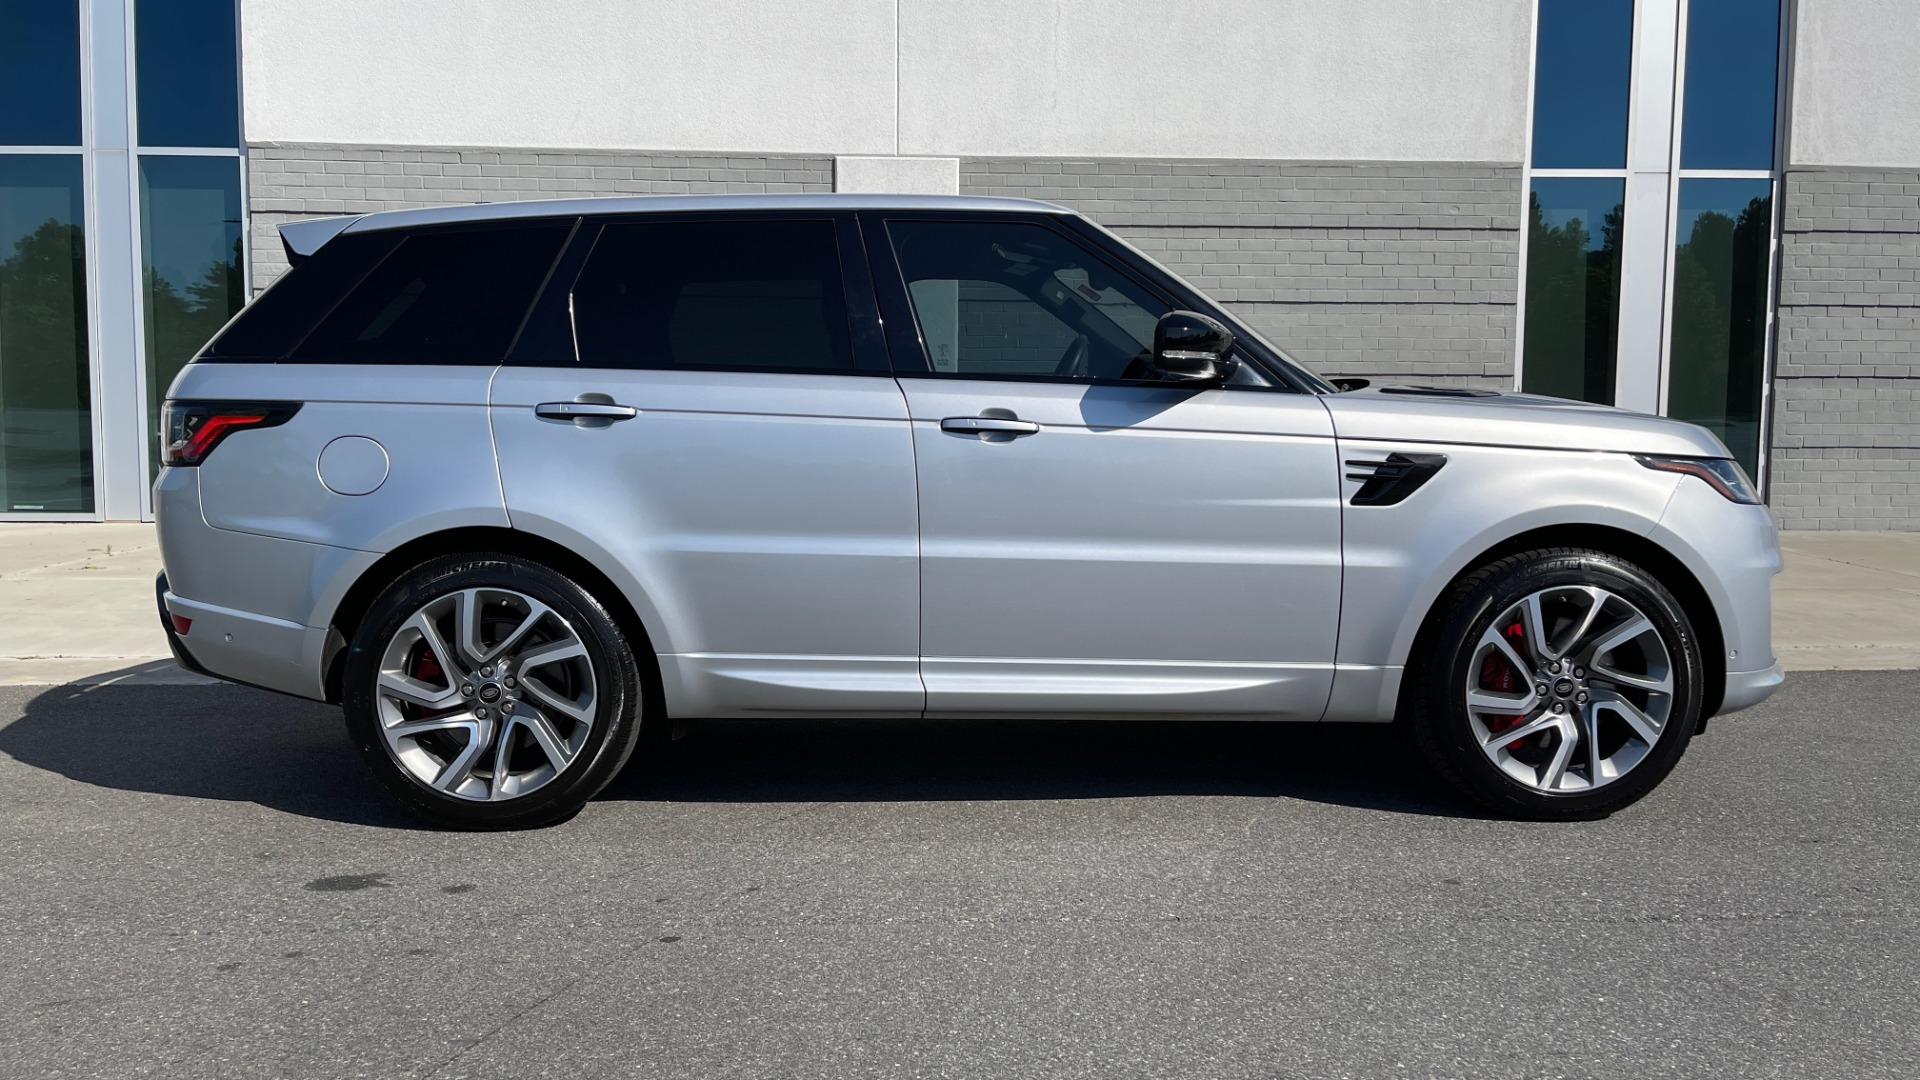 Used 2019 Land Rover RANGE ROVER SPORT HSE DYNAMIC / NAV / PANO-ROOF / BLIND SPOT / LANE DEPART / REARVIEW for sale Sold at Formula Imports in Charlotte NC 28227 5